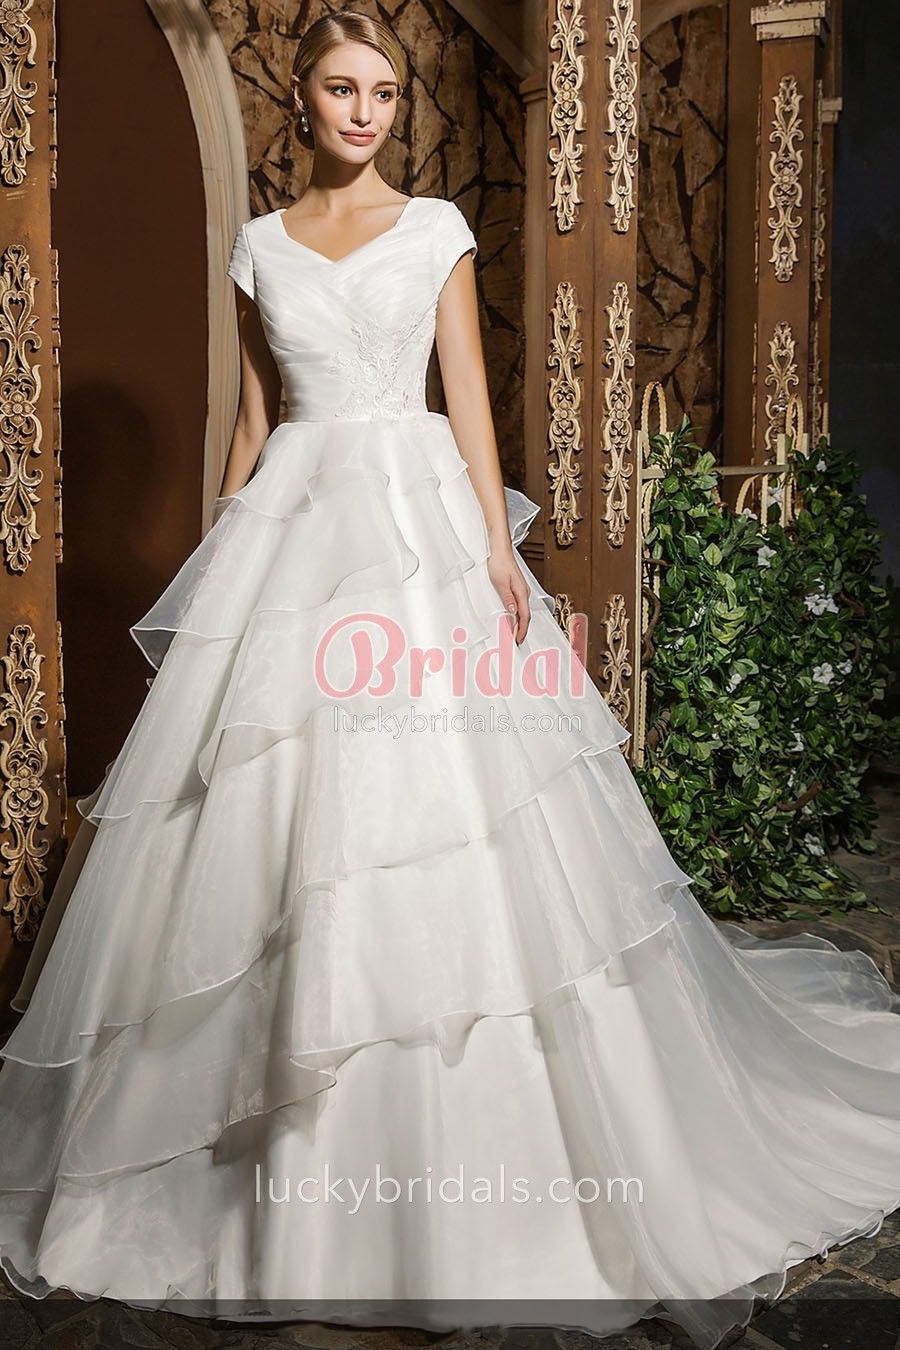 Tiered Organza Skirt Modest Short Sleeves Princess Wedding Ball